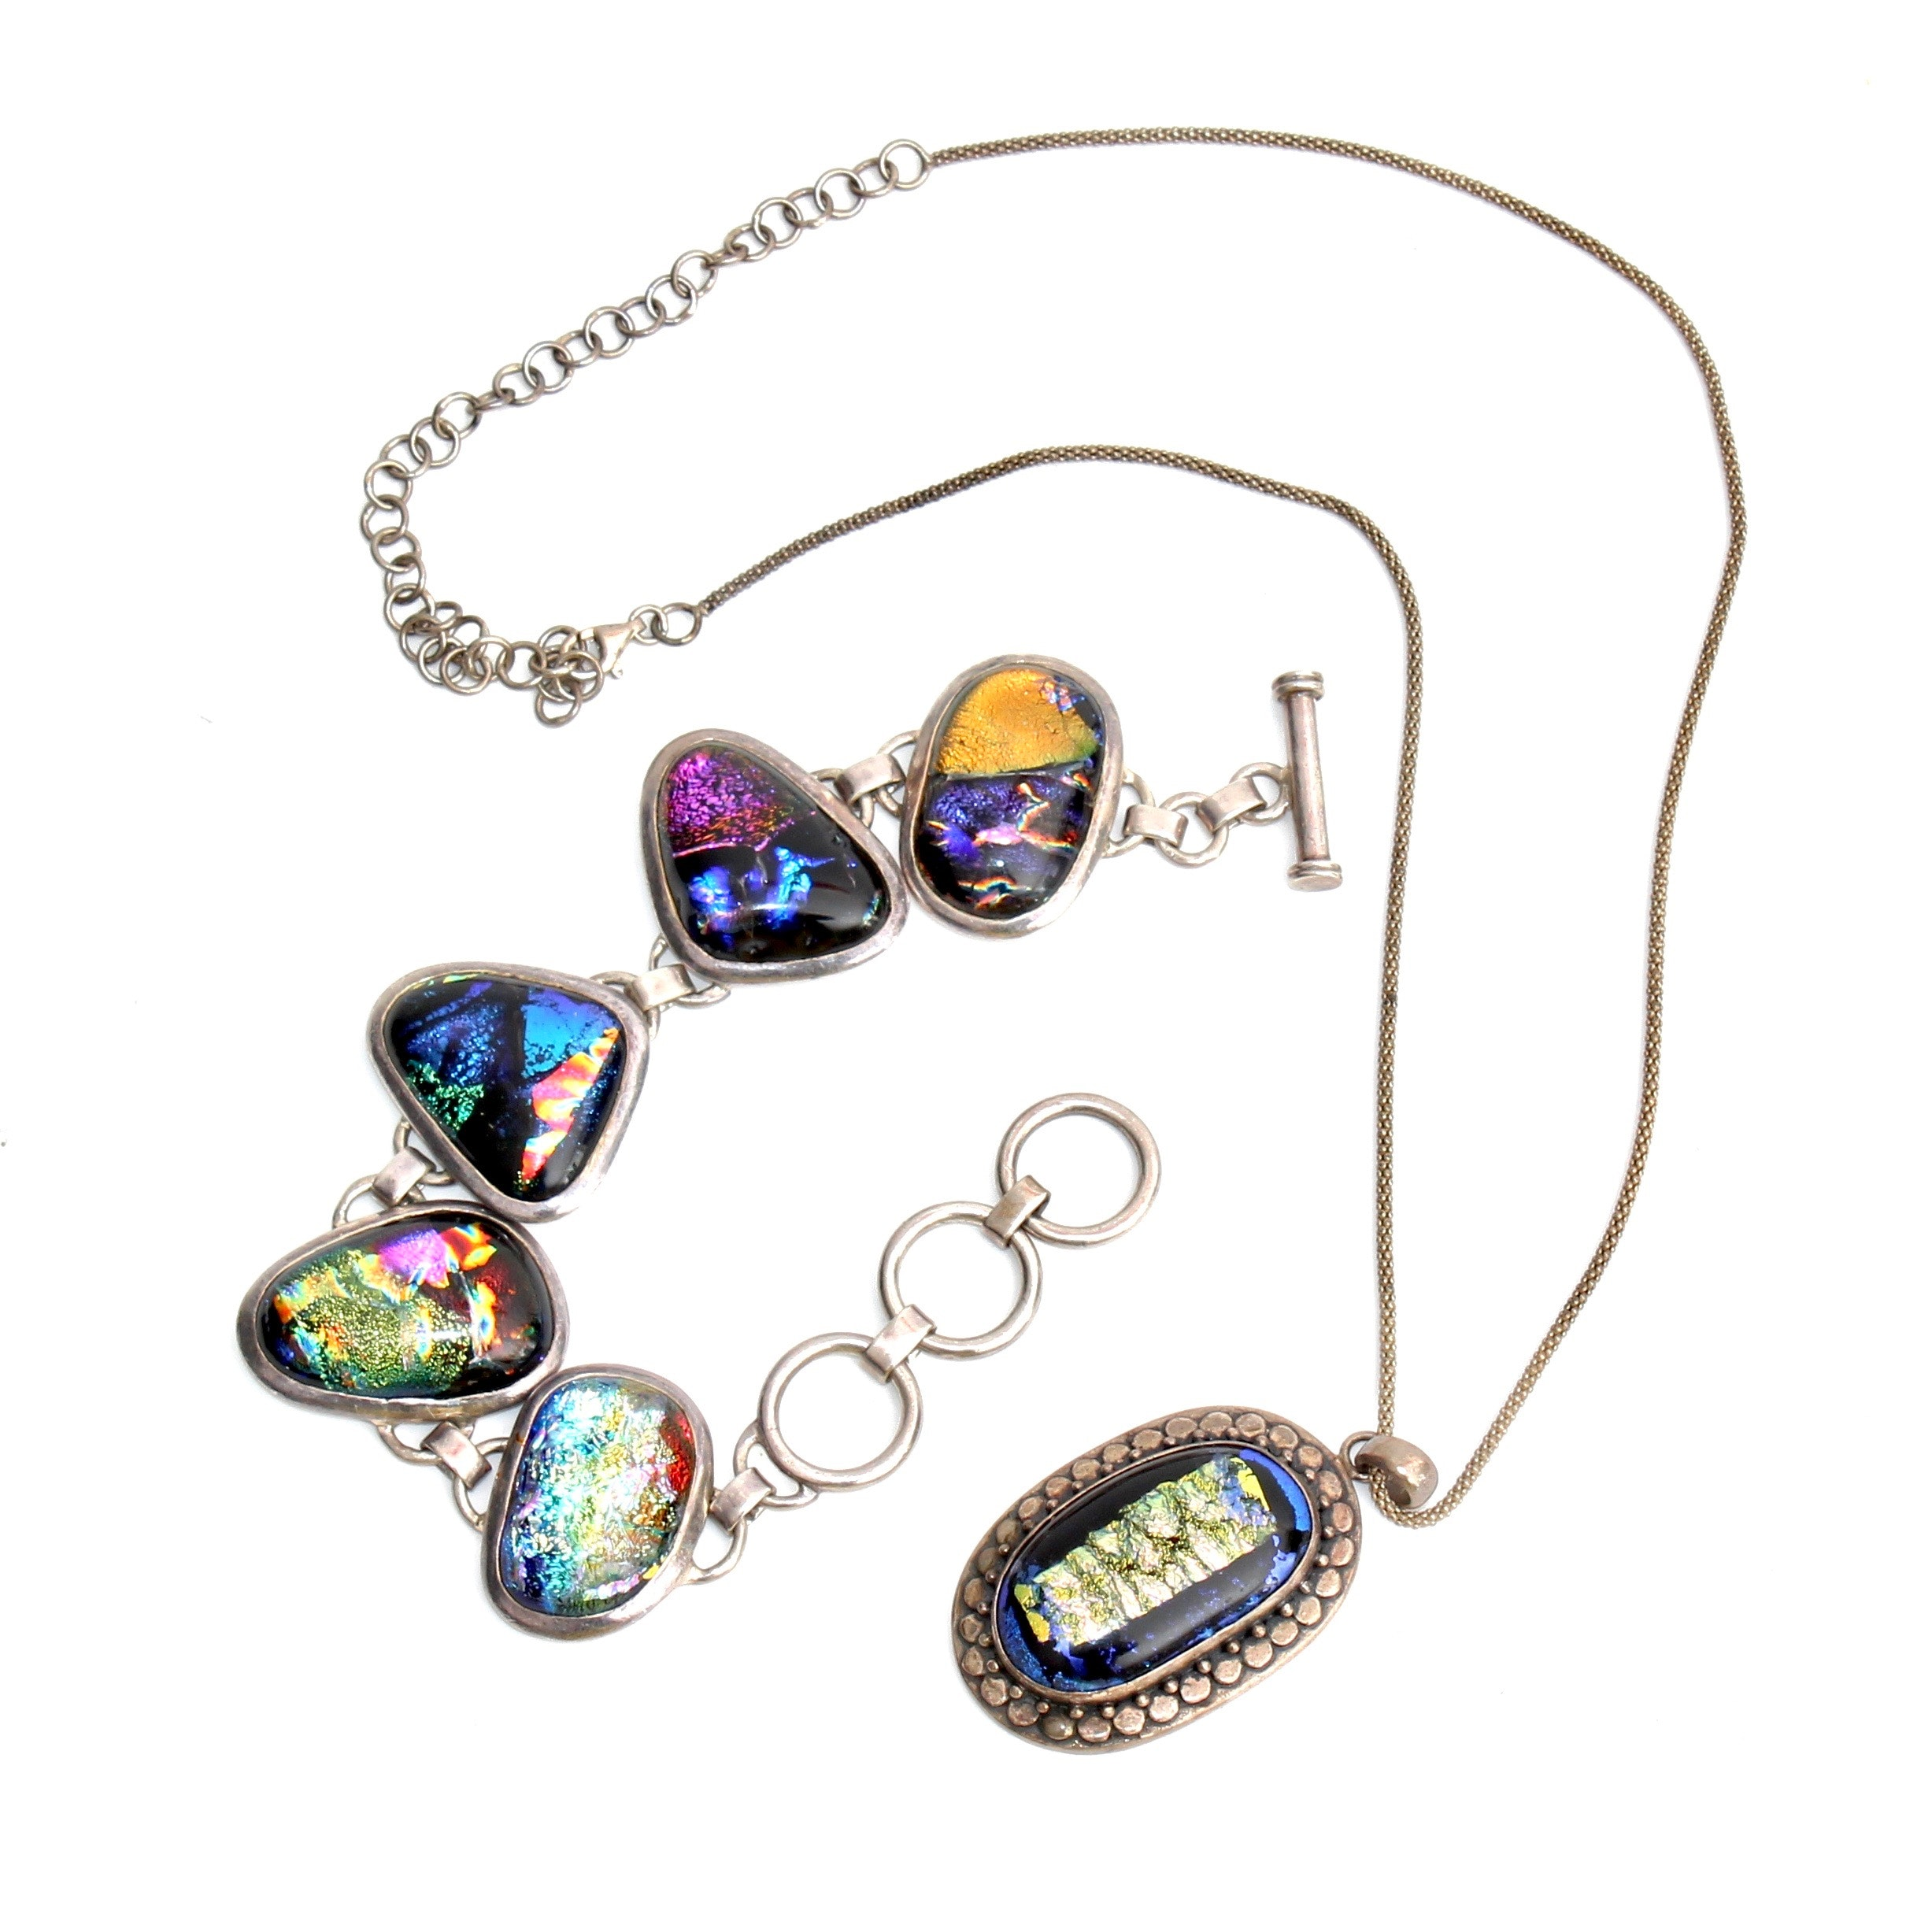 Sterling Silver and Art Glass Toggle Bracelet and Necklace